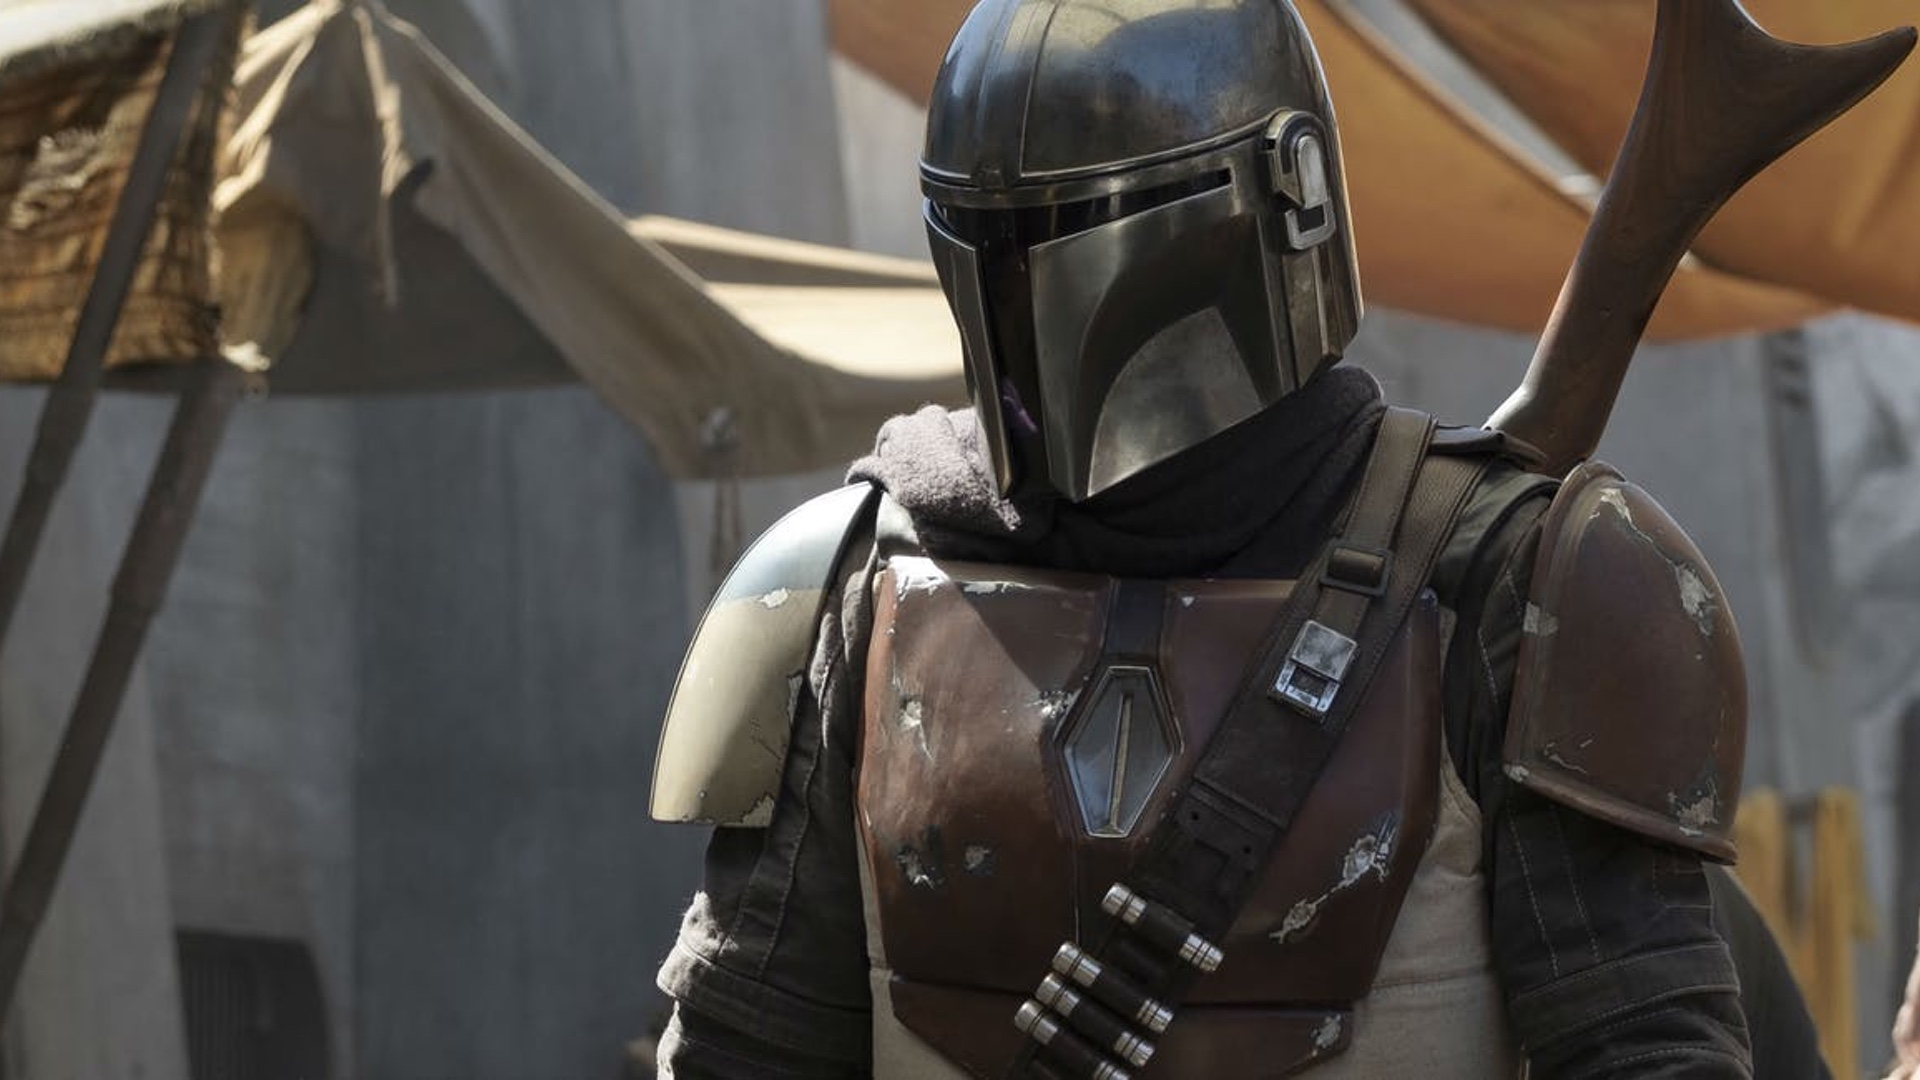 character-and-location-details-about-star-wars-the-mandalorian-revealed-social.jpg